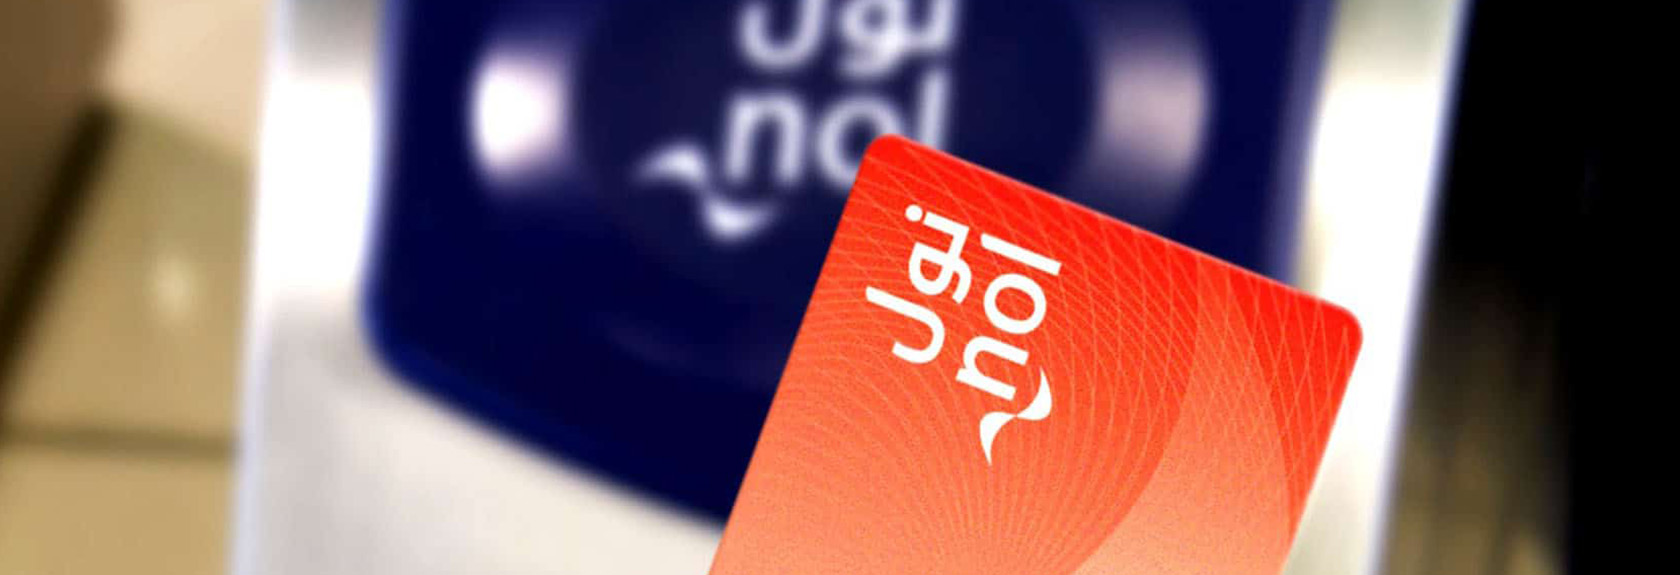 The Nol Card – the public transport chip card of Dubai